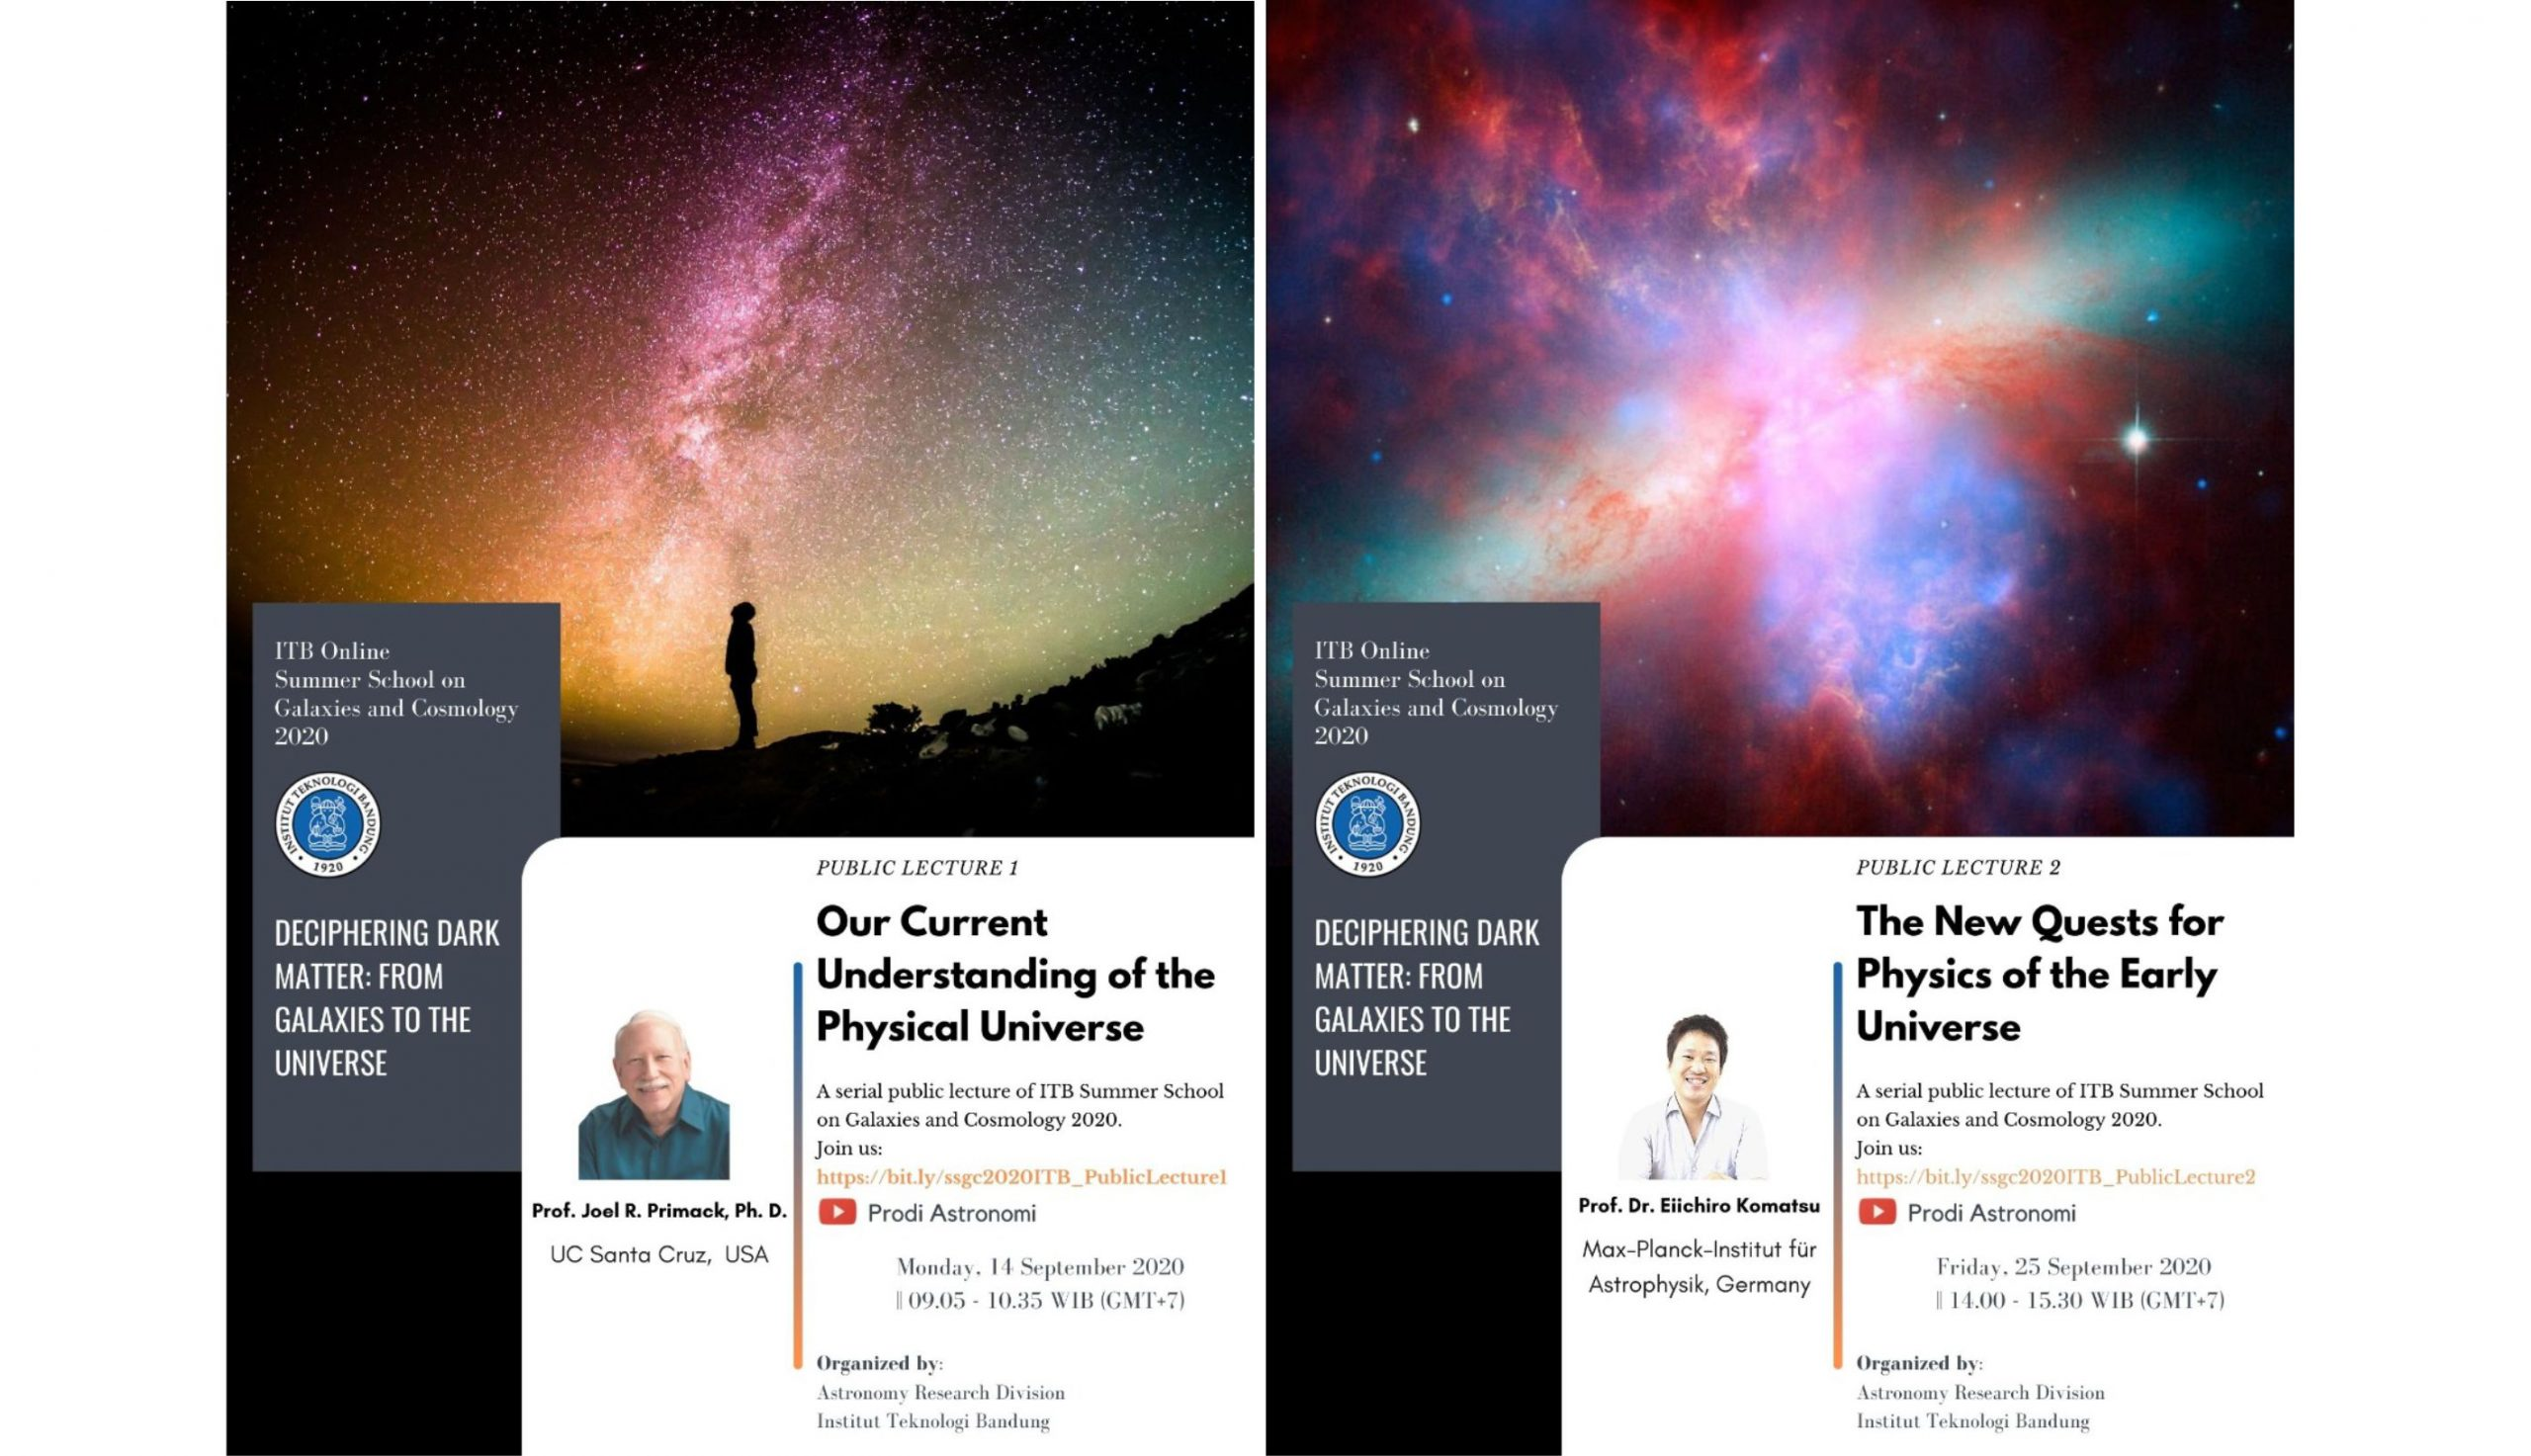 ITB Online Summer School on Galaxies and Cosmology 2020